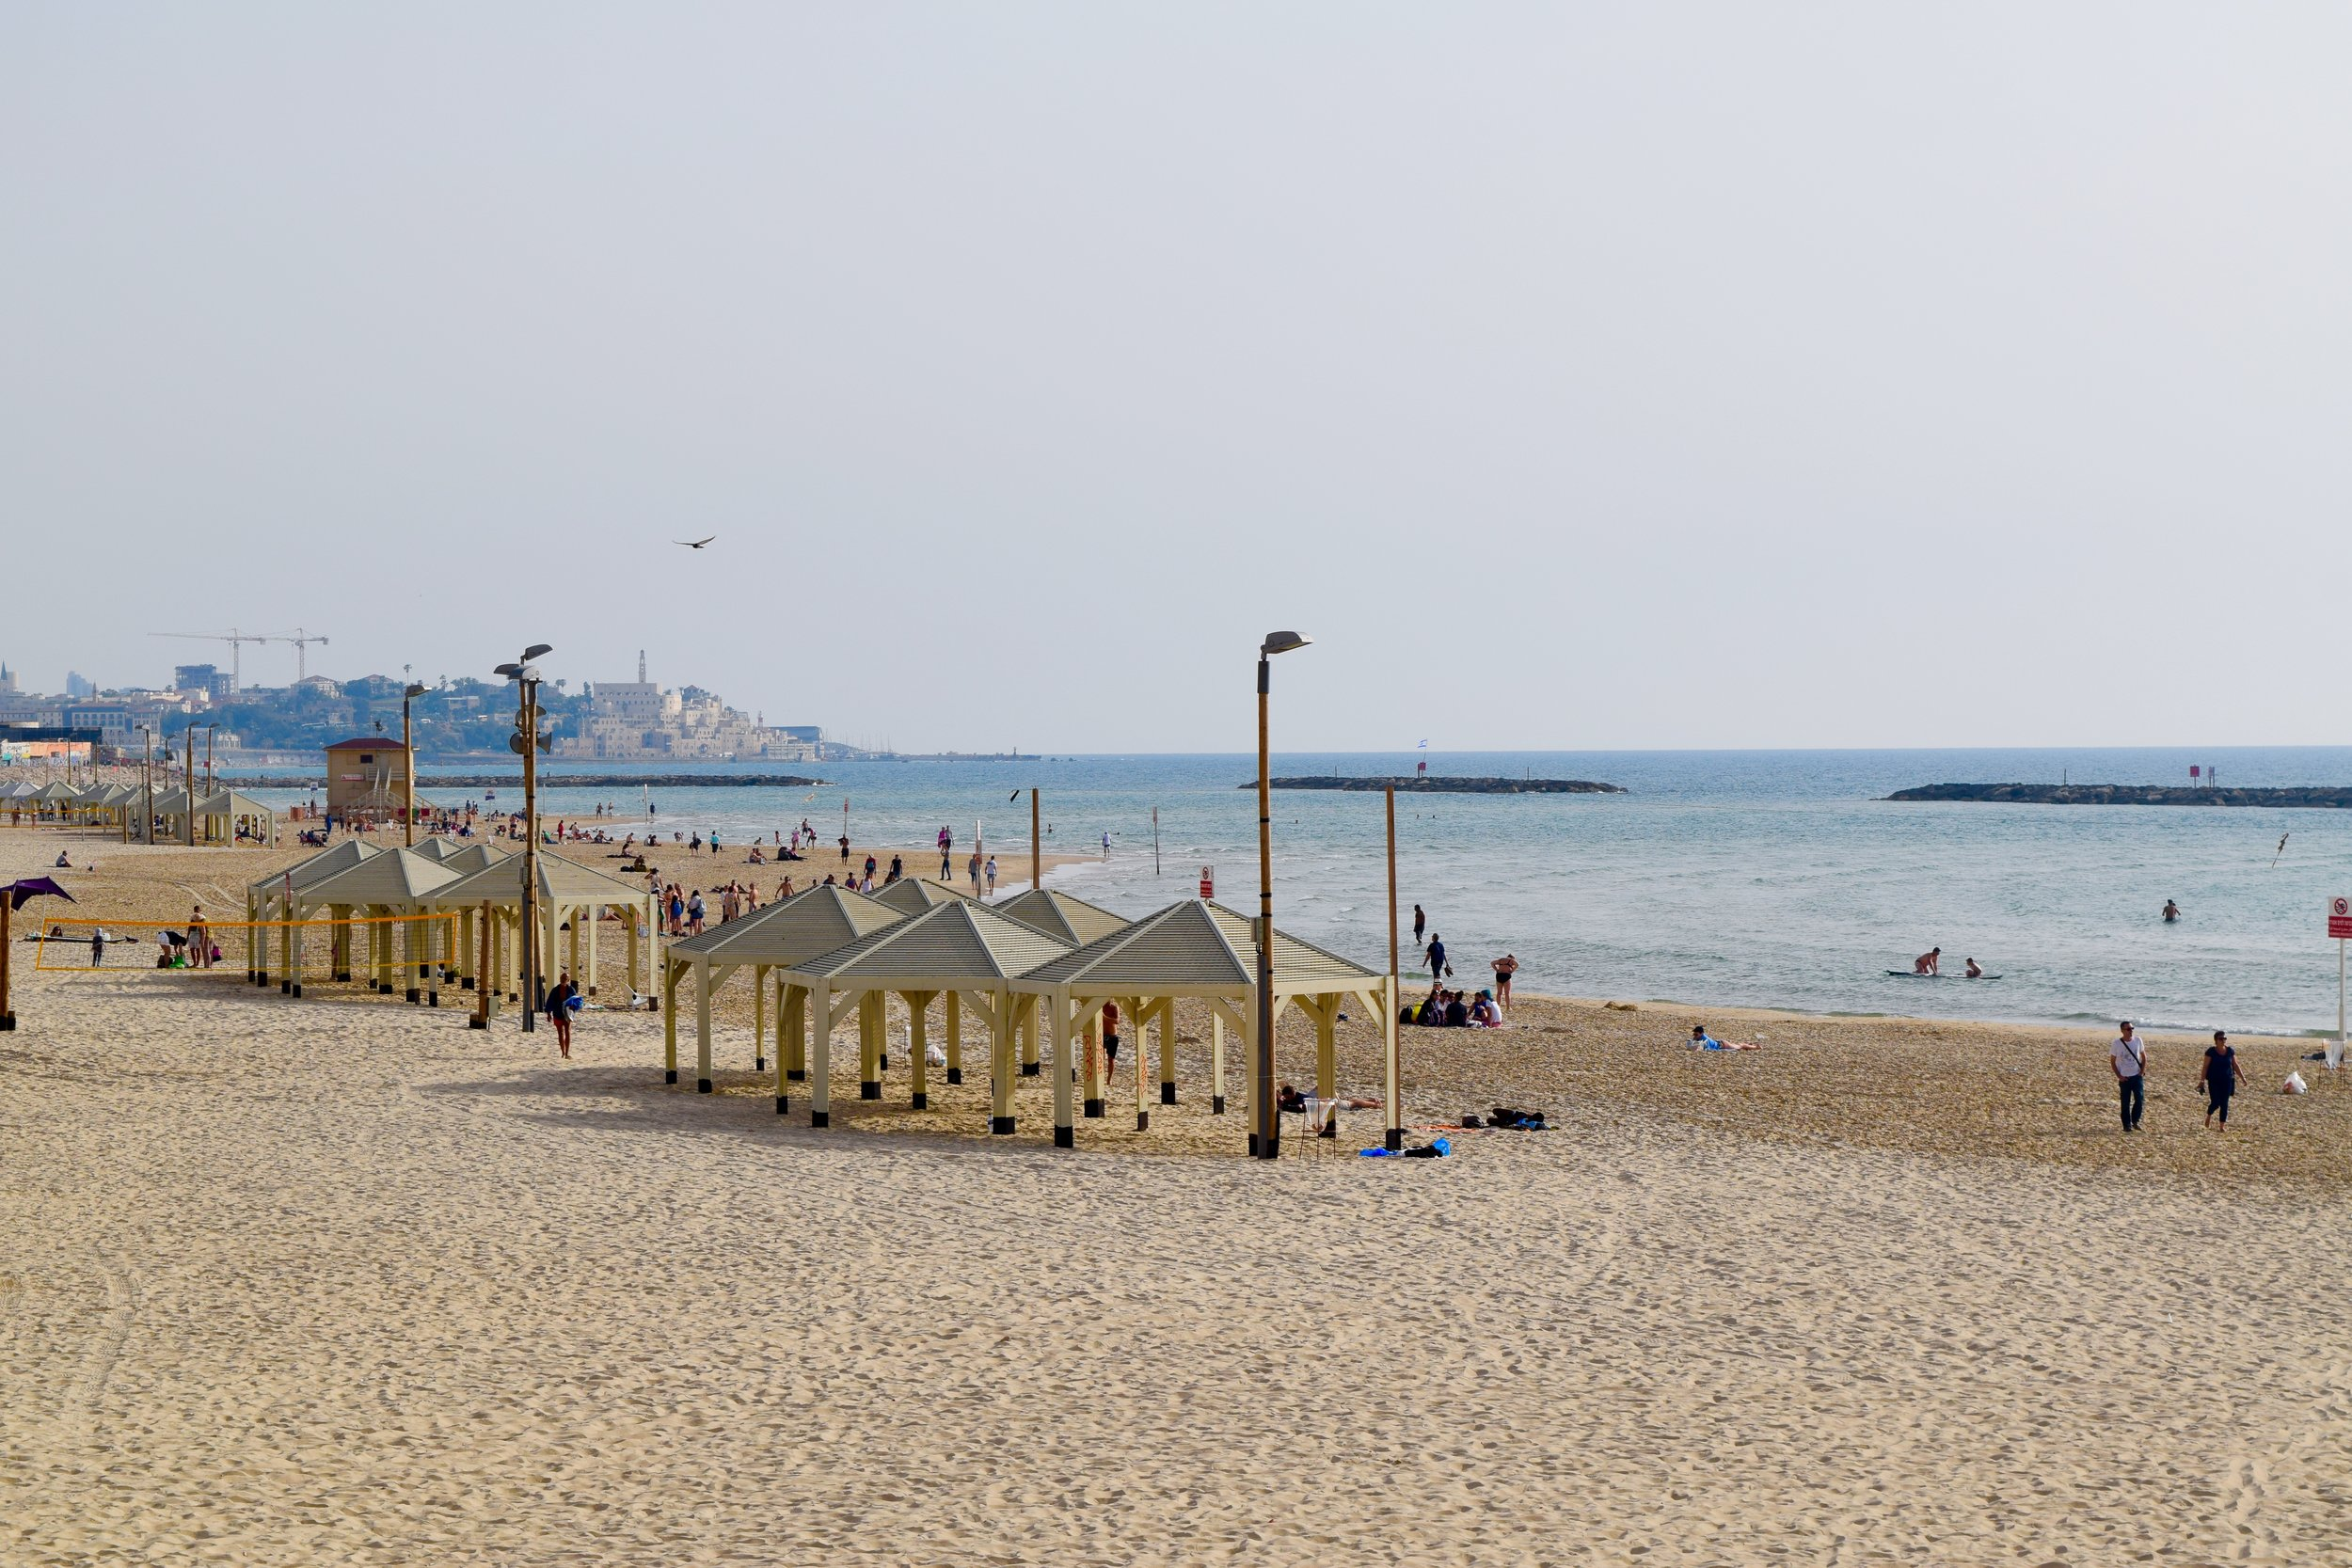 Views of Tel Aviv beach with Jaffa in the background